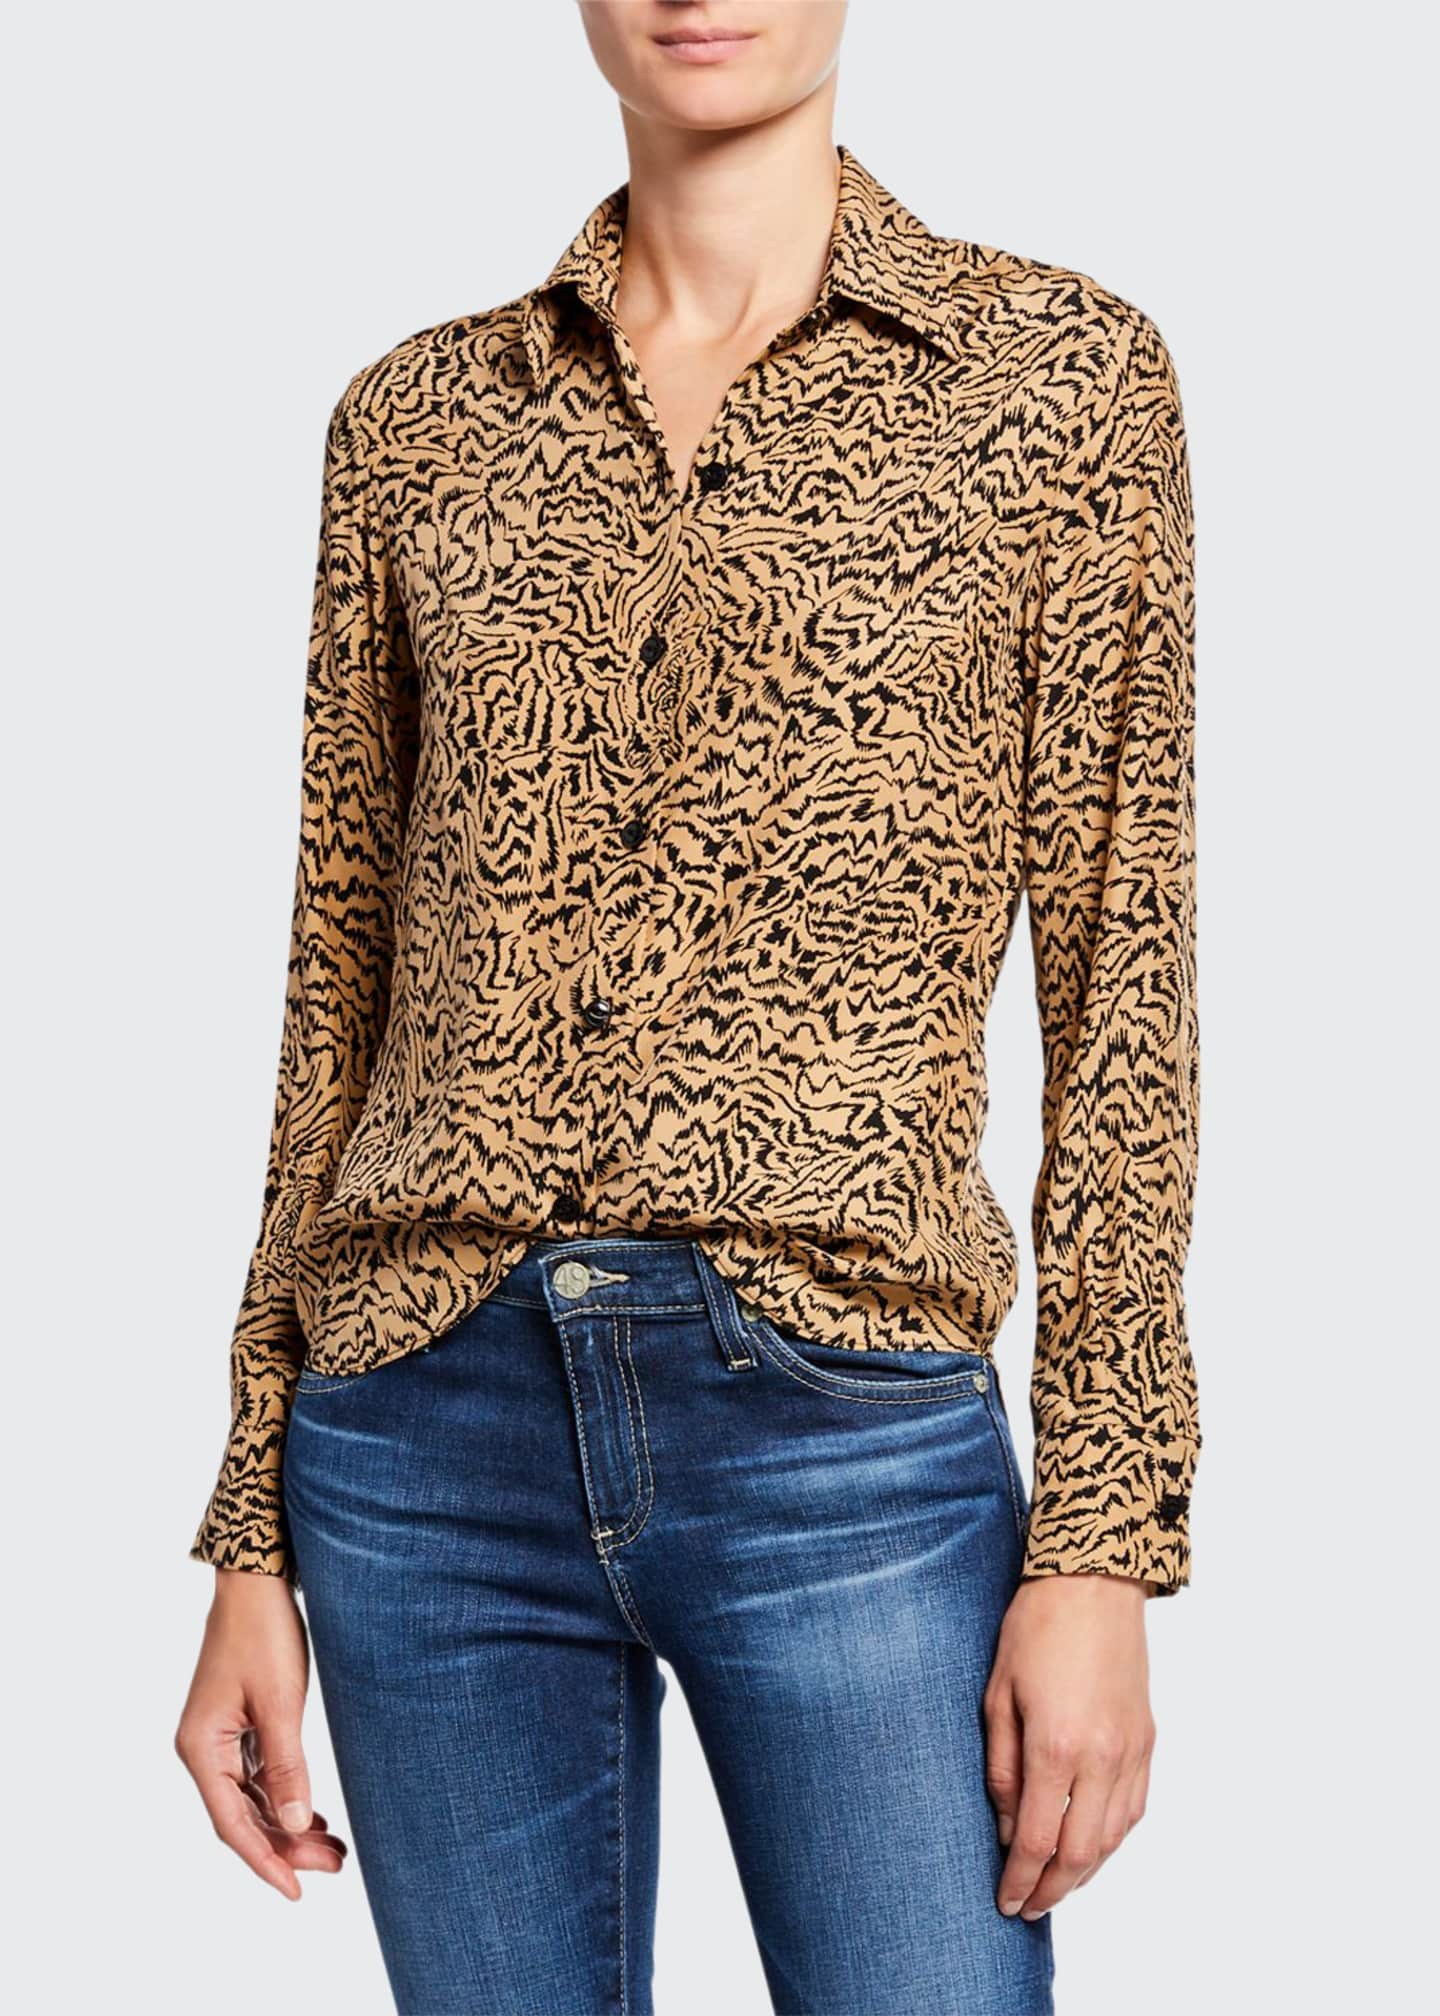 HVN Cristina Button-Down Tiger-Print Blouse